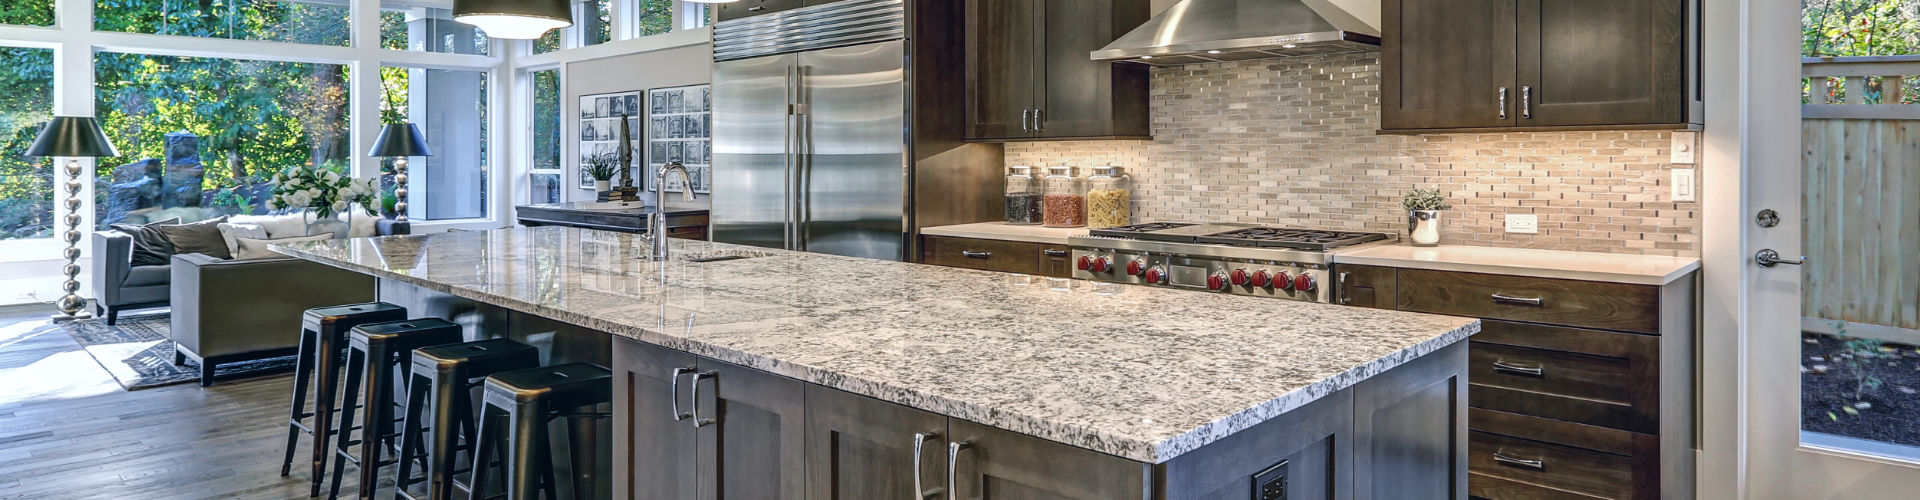 Granite Kitchen Countertop with Backsplash Tile